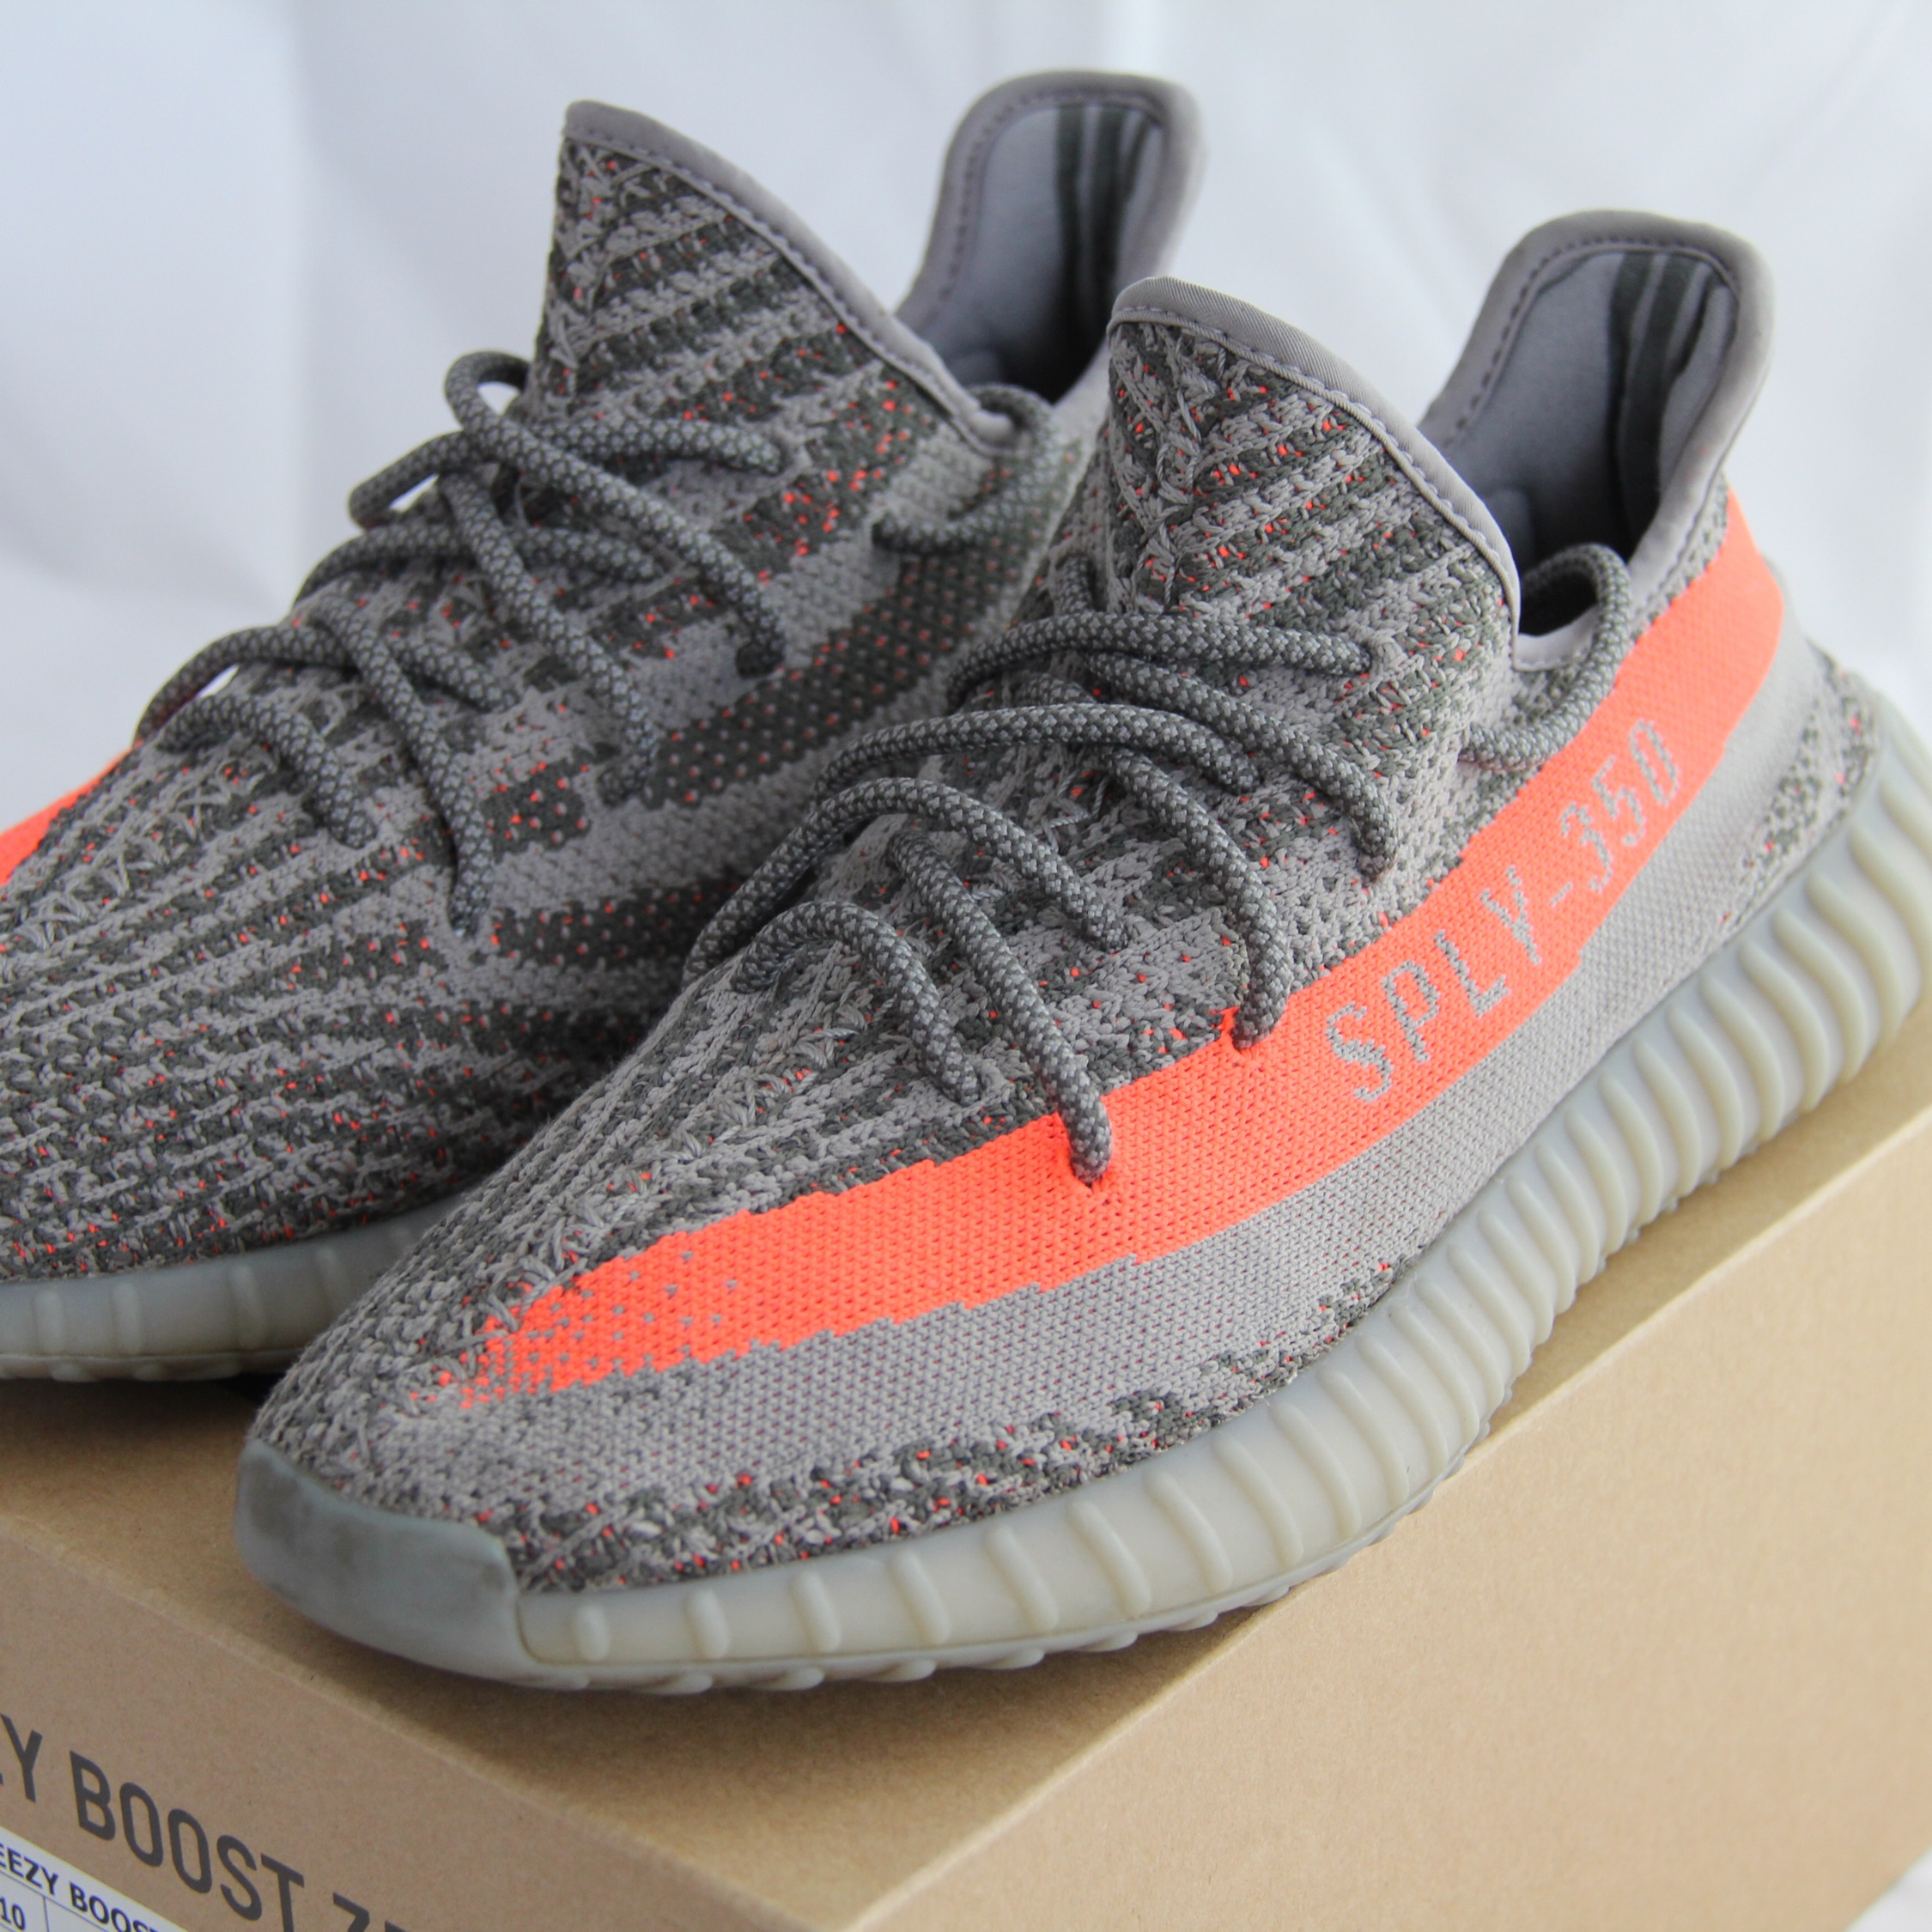 yeezy 350 beluga uk